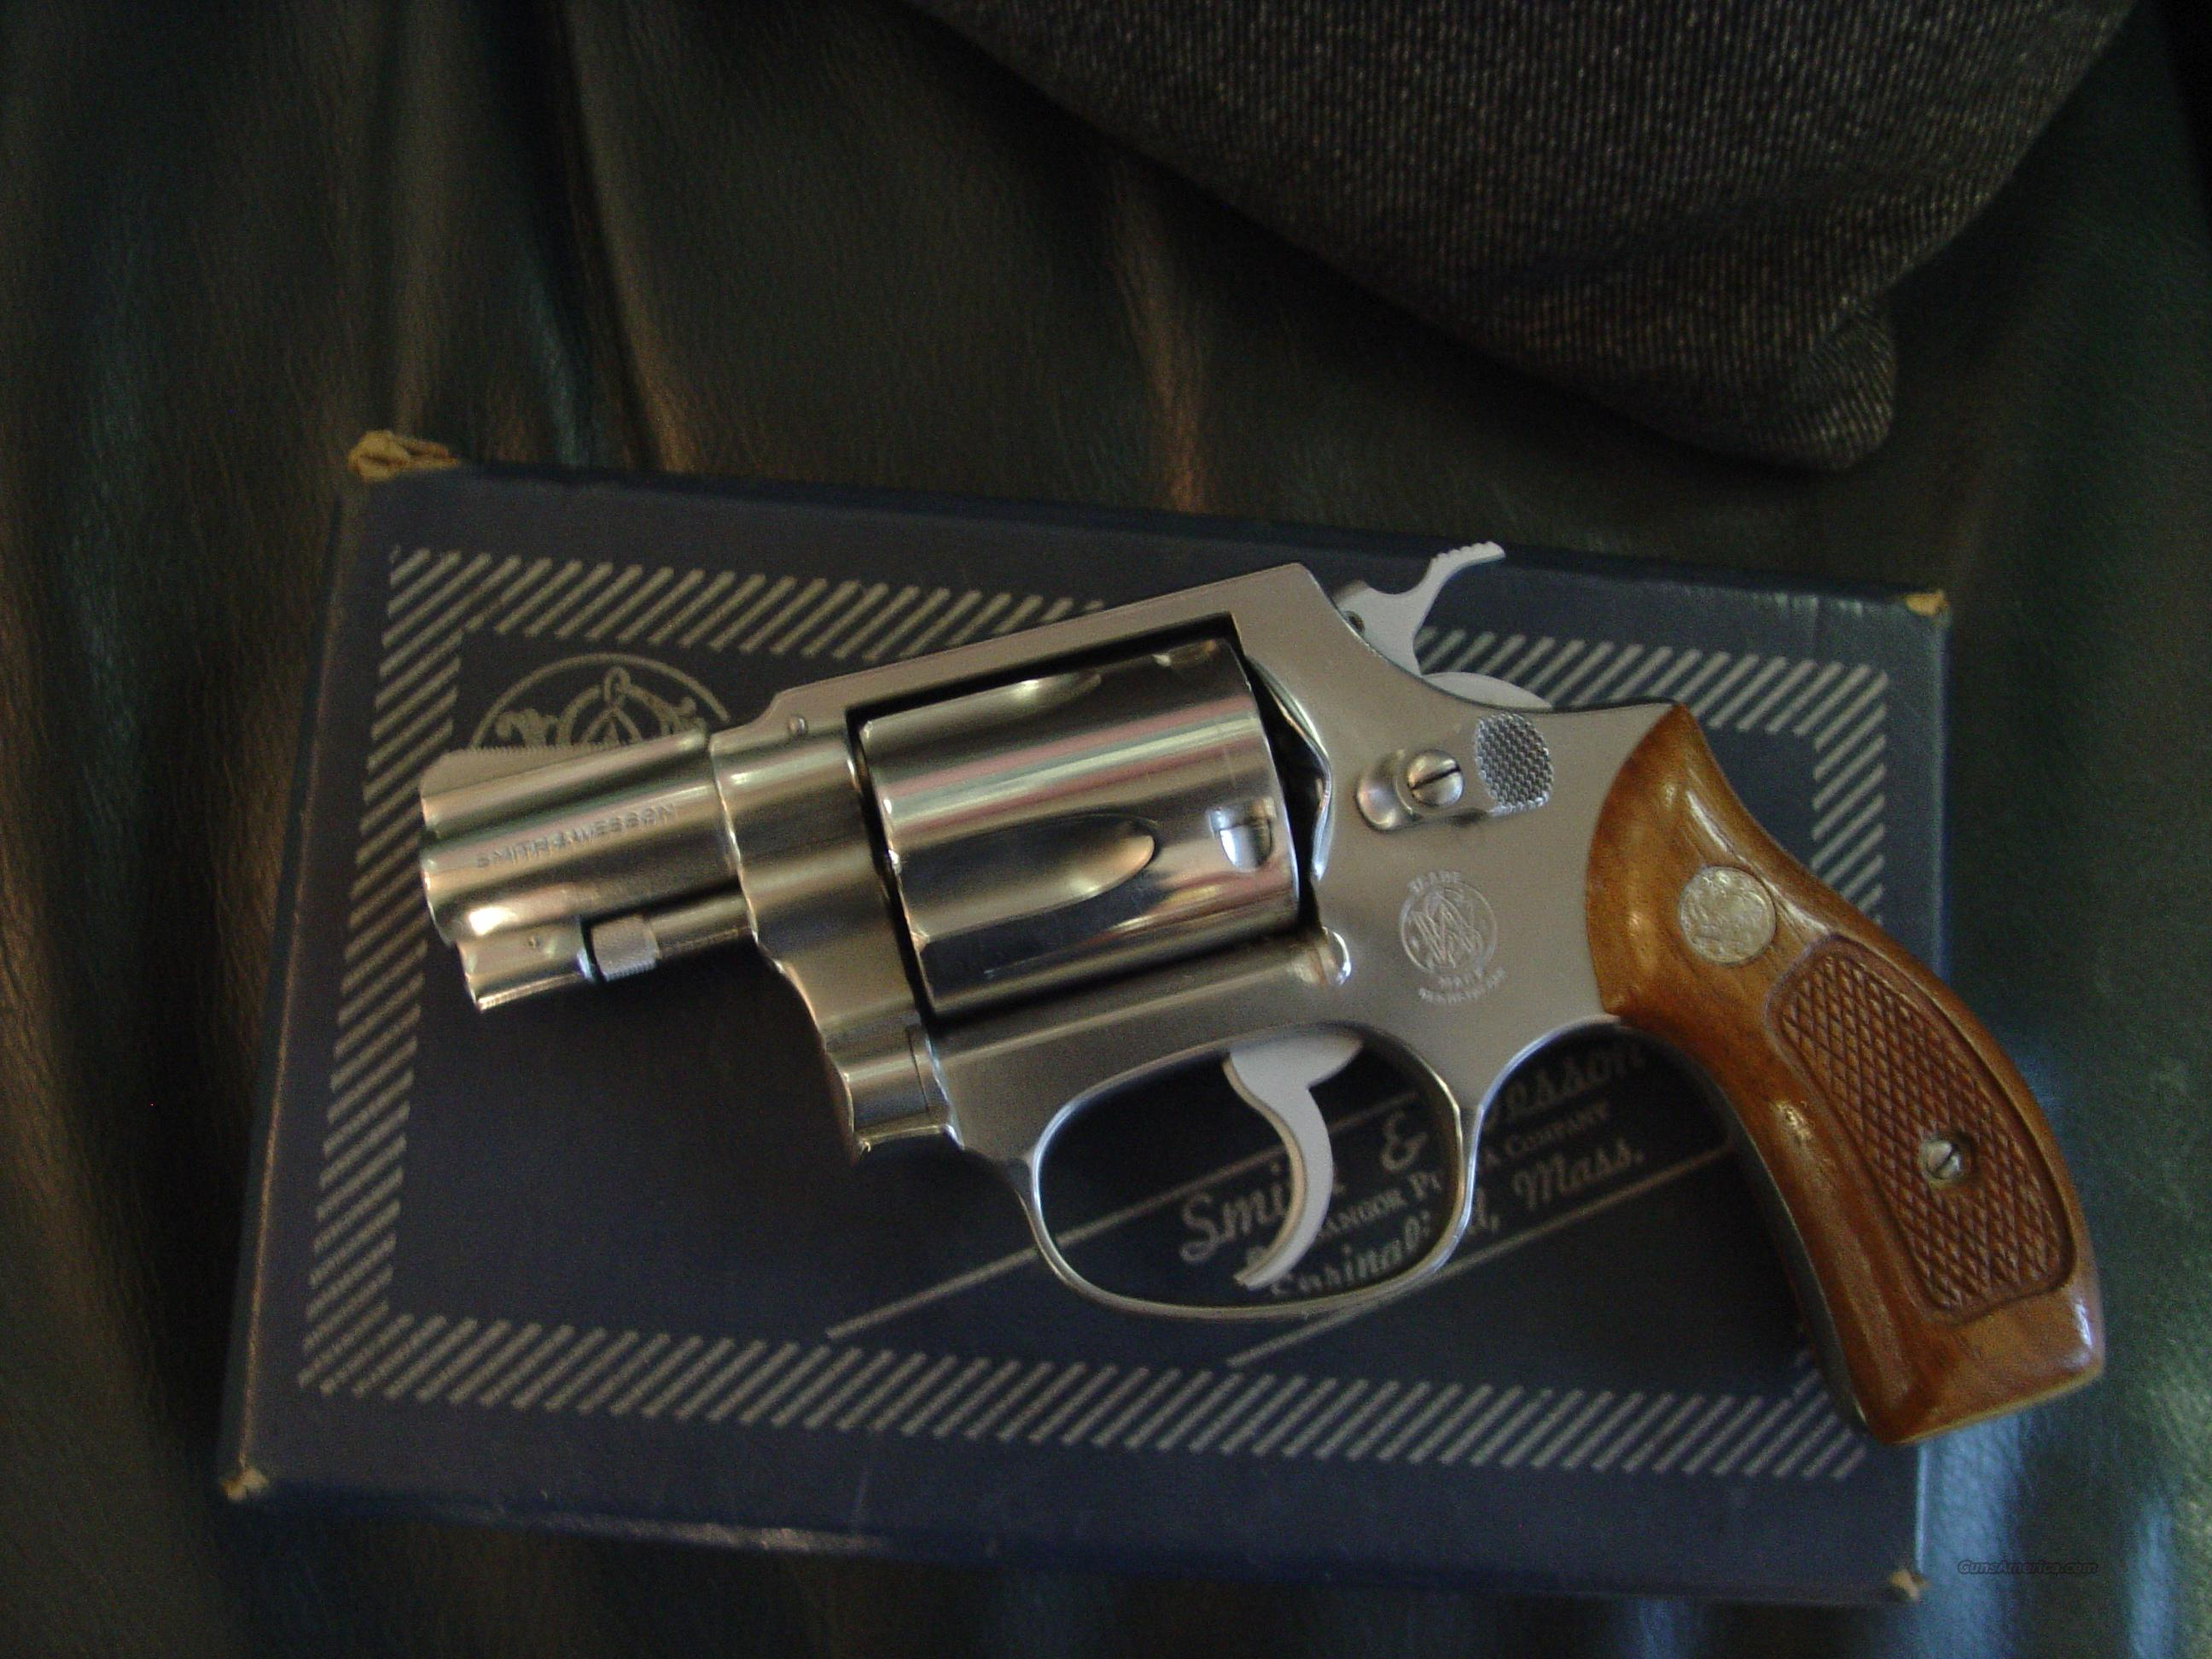 "Smith & Wesson Model 60 no dash ! 1 3/4"" barrel,satin stainless,38 special,Chiefs Special,pinned barrel,3 screw,1969,5 shot,blue box  Guns > Pistols > Smith & Wesson Revolvers > Pocket Pistols"